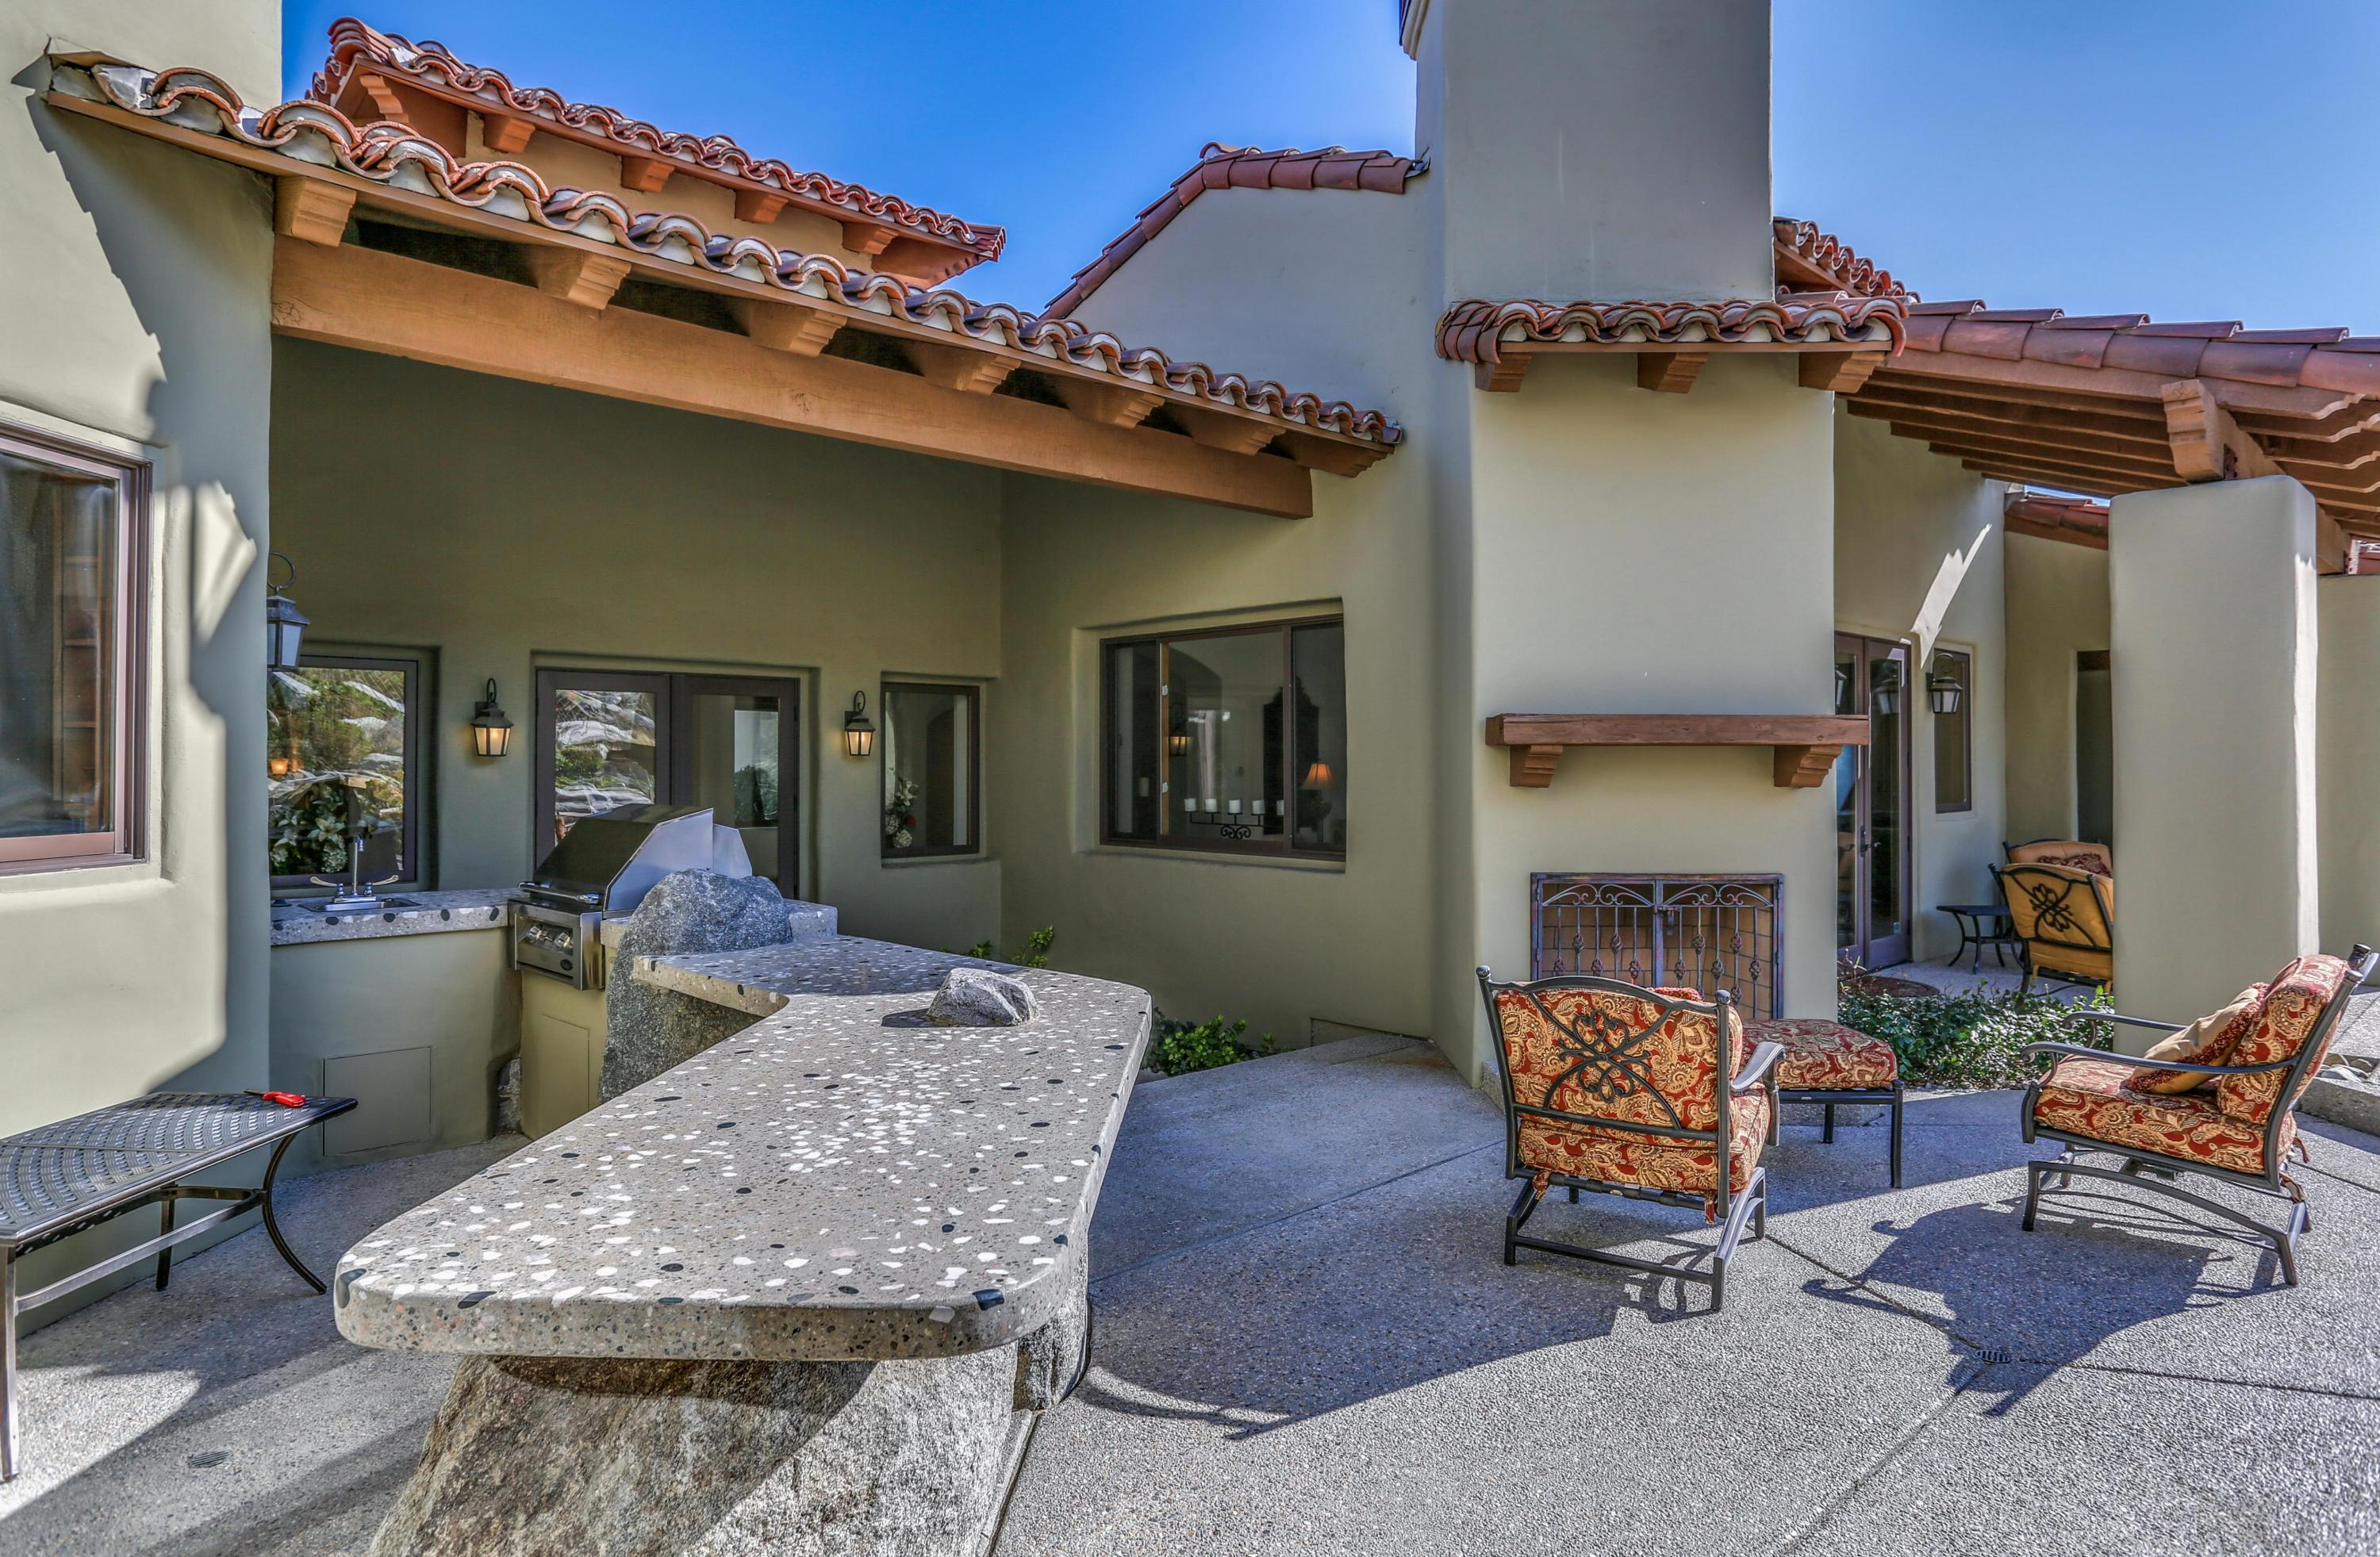 2489 Tuscany Heights Drive, Palm Springs, California 92262, 3 Bedrooms Bedrooms, ,4 BathroomsBathrooms,Residential,For Sale,2489 Tuscany Heights Drive,219036775